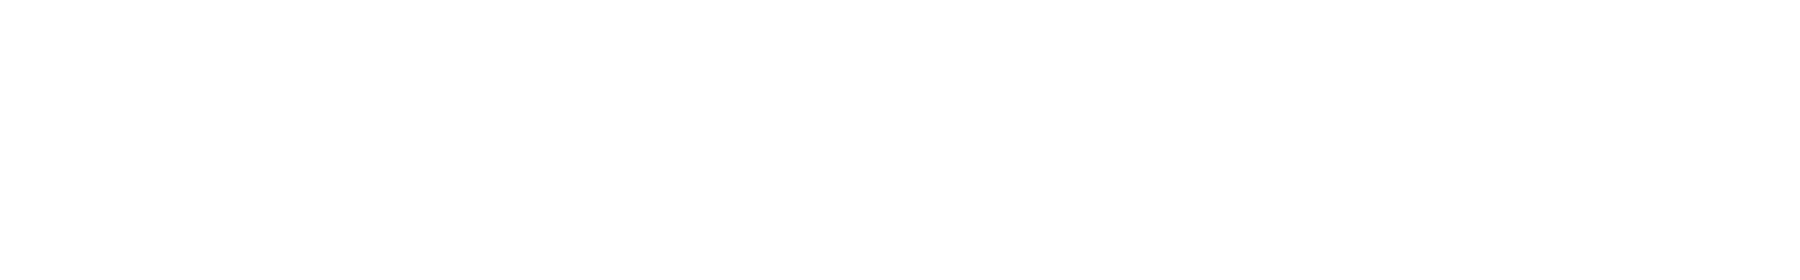 veh1 cutted sounds   123